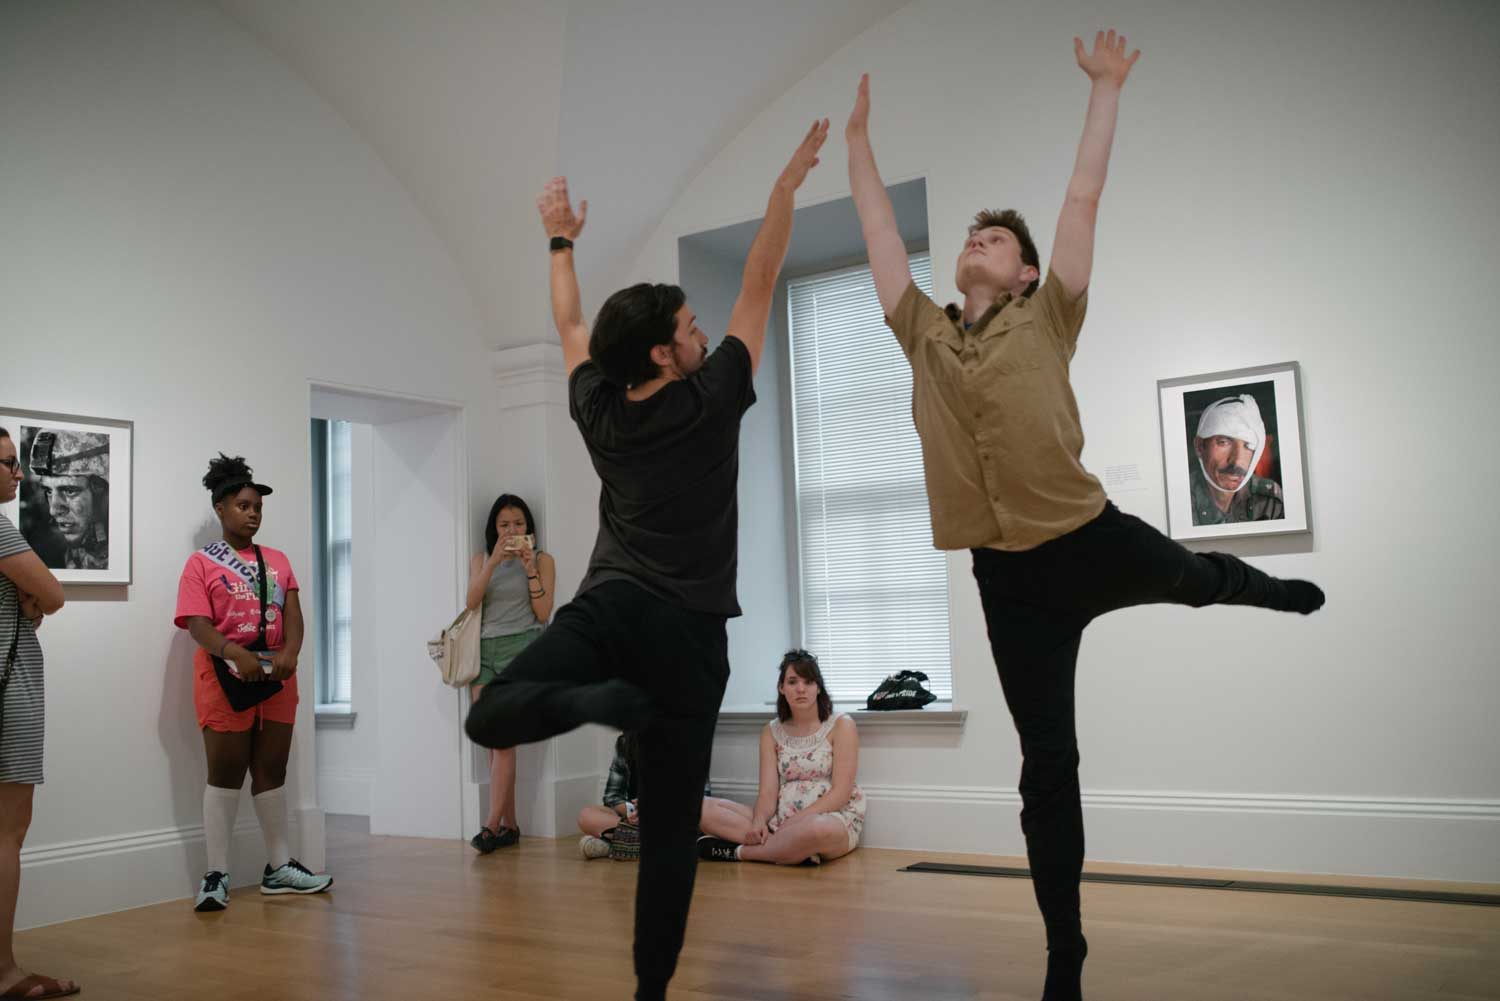 Two men dancing with their arms up in an art gallery